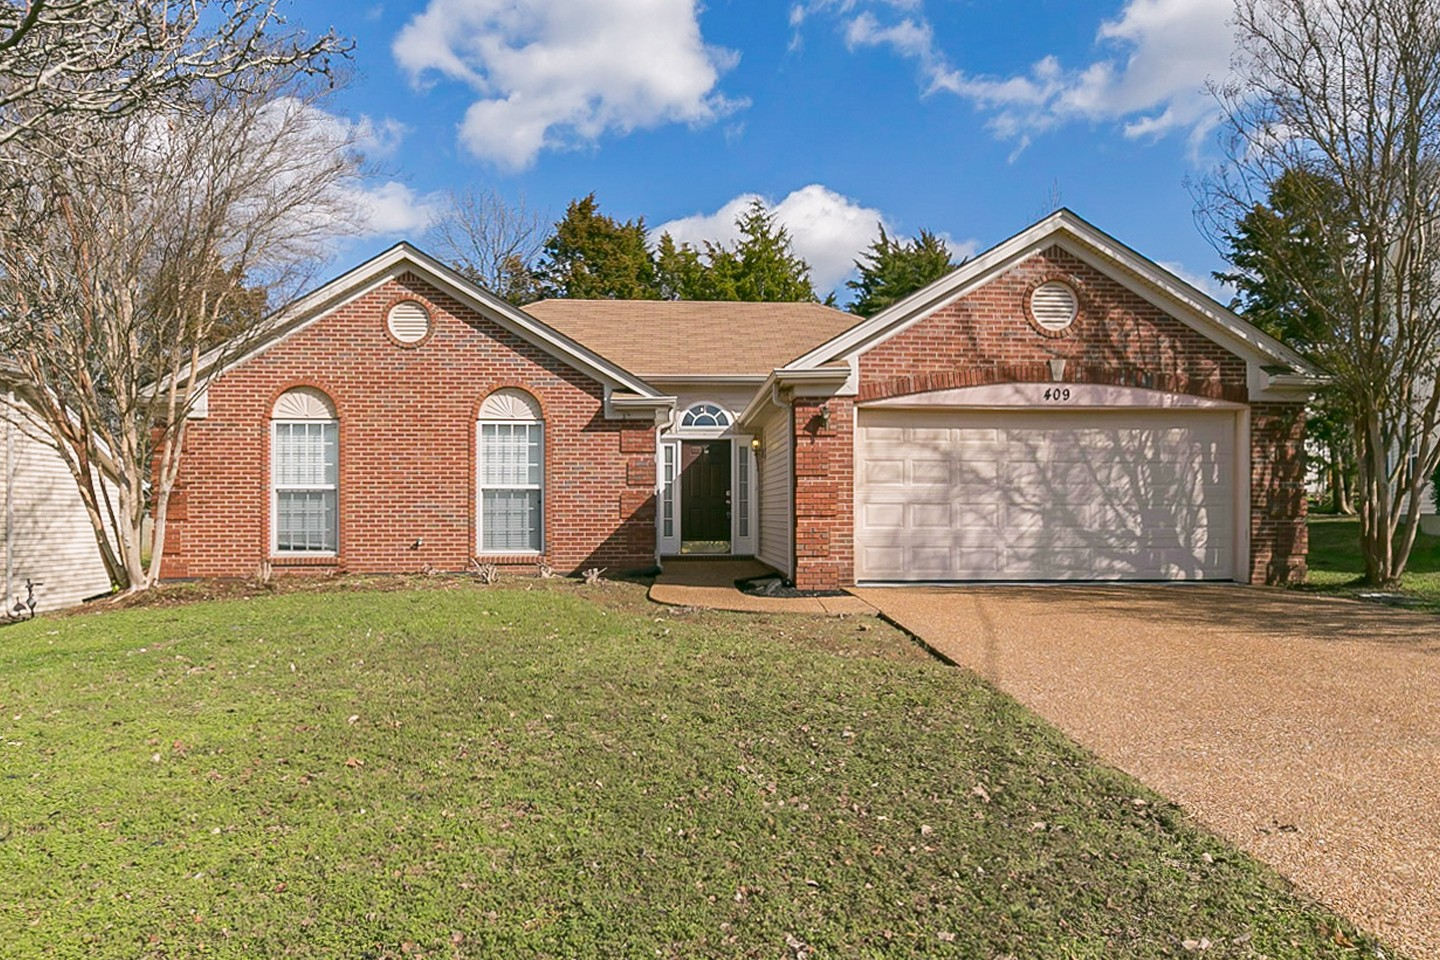 409 Ashby PL, Nashville-Antioch in Davidson County, TN County, TN 37013 Home for Sale